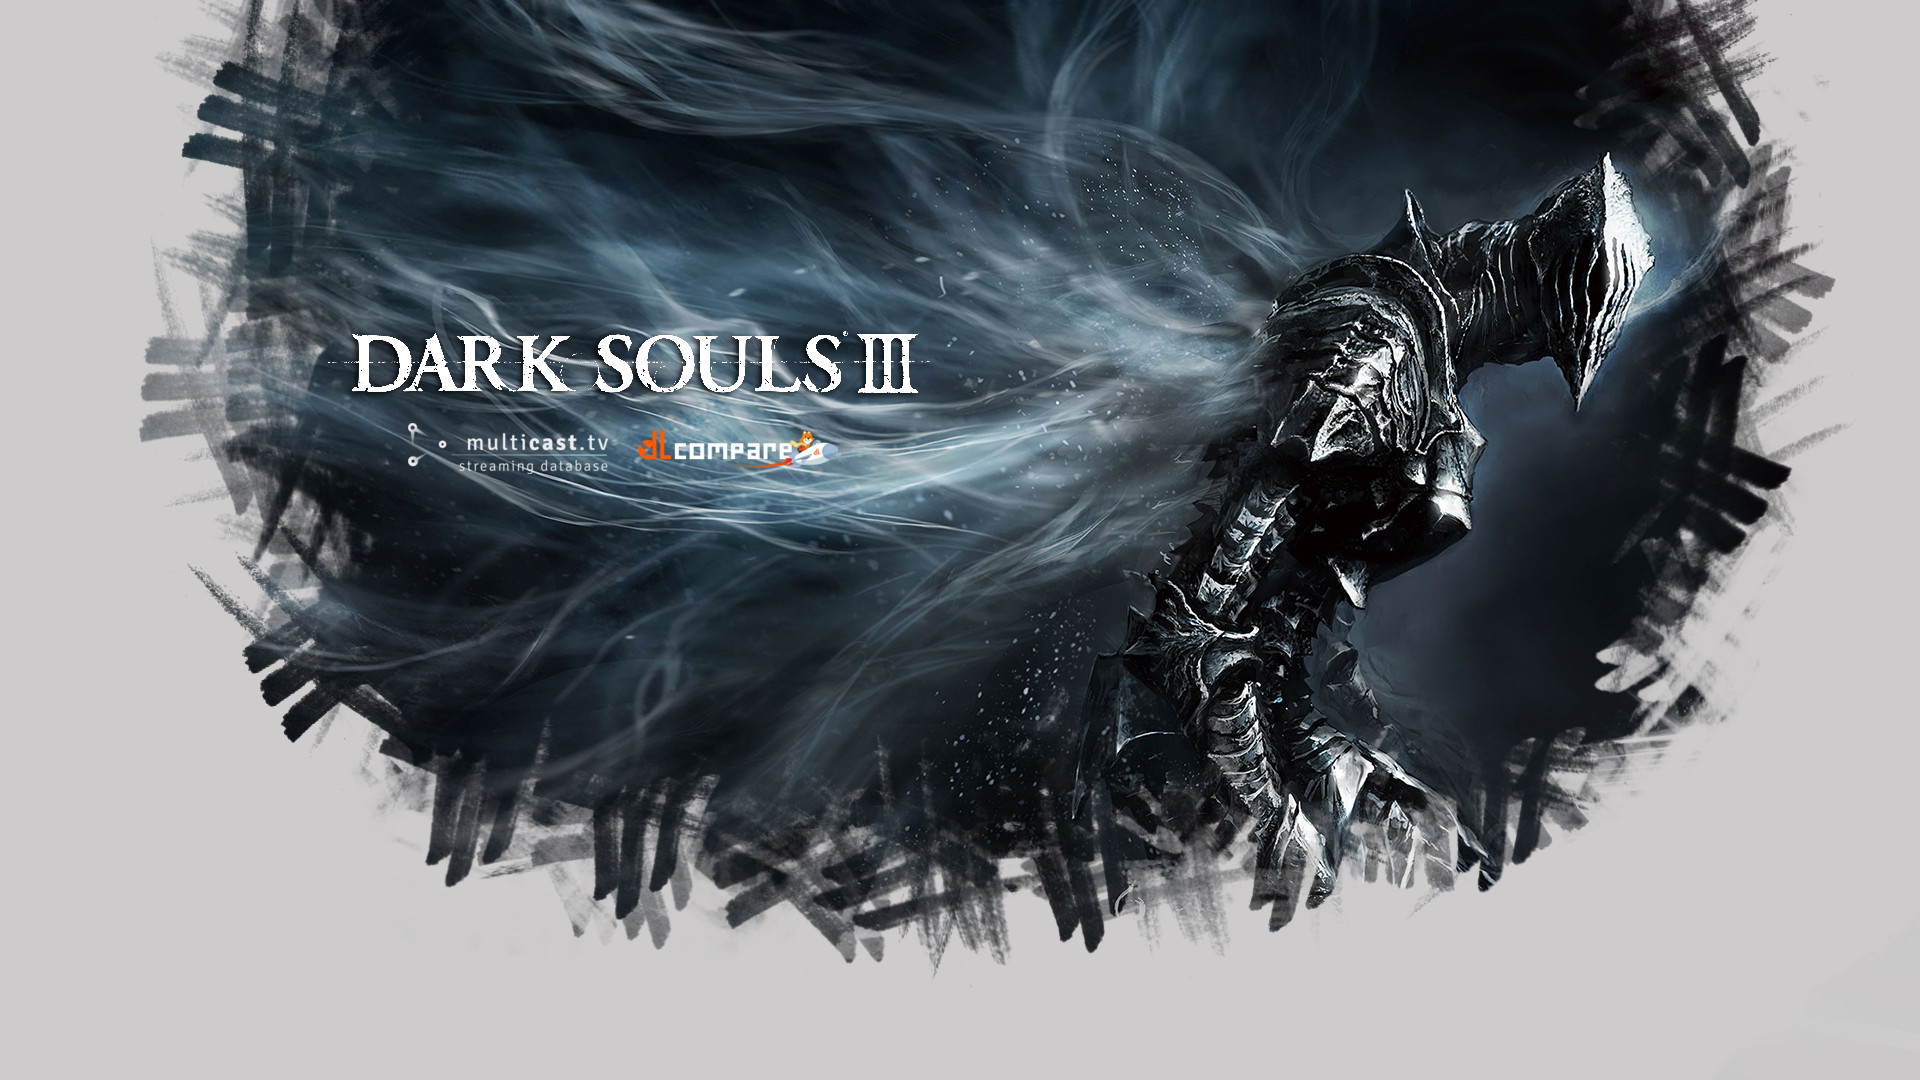 Dark Souls 3 DLCompare & Multicast.TV